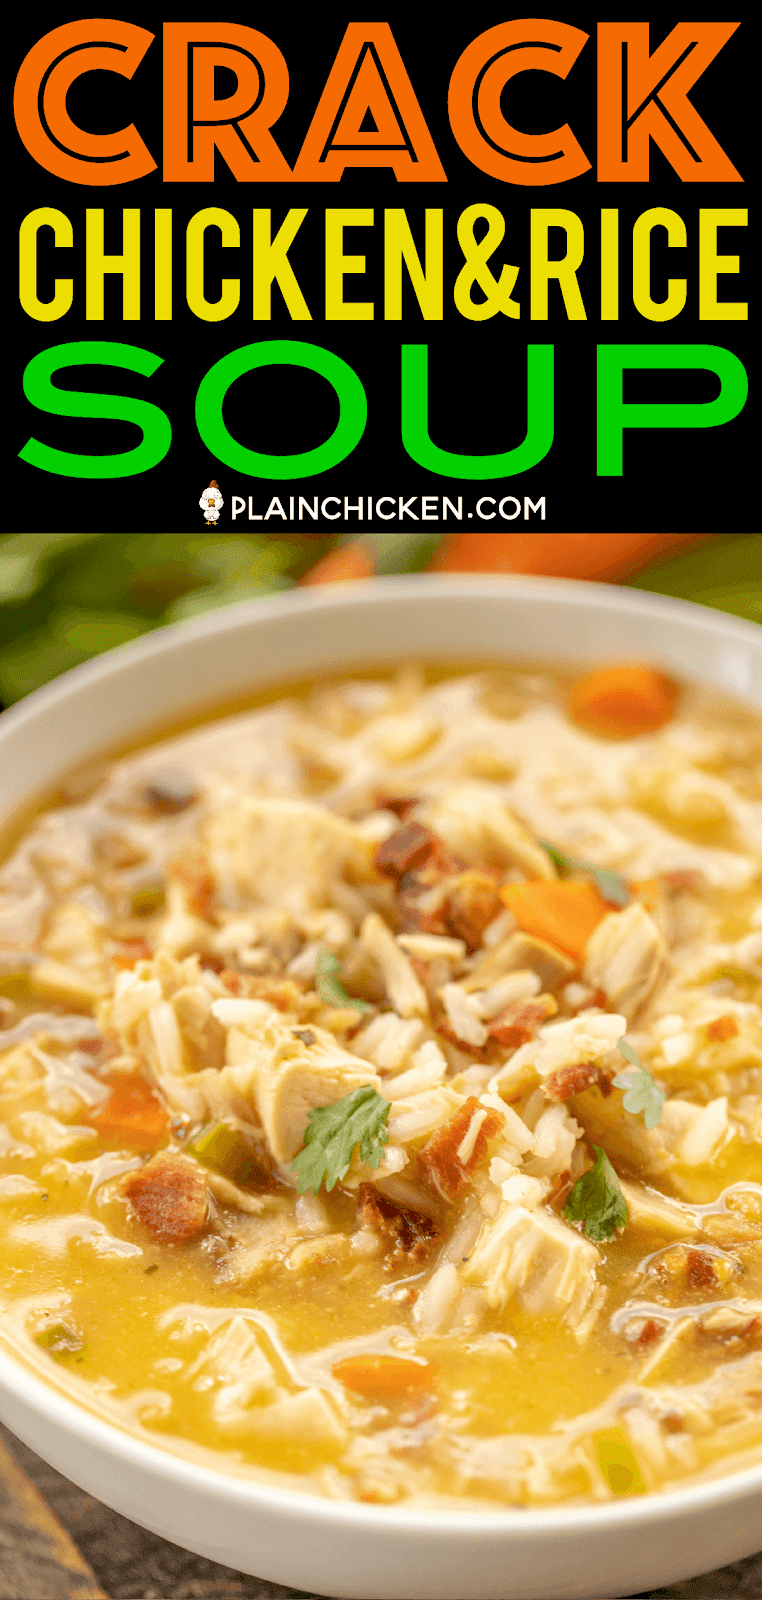 Crack Chicken and Rice Soup - this soup should come with a warning label! SO GOOD!!! Ready in 30 minutes! Chicken, cheese soup, chicken broth, celery, carrots, ranch mix, bacon, and rice. Everyone went back for seconds - even our super picky eaters! A great kid-friendly dinner!! We love this soup! #soup #bacon #chickenandricesoup #crackchicken